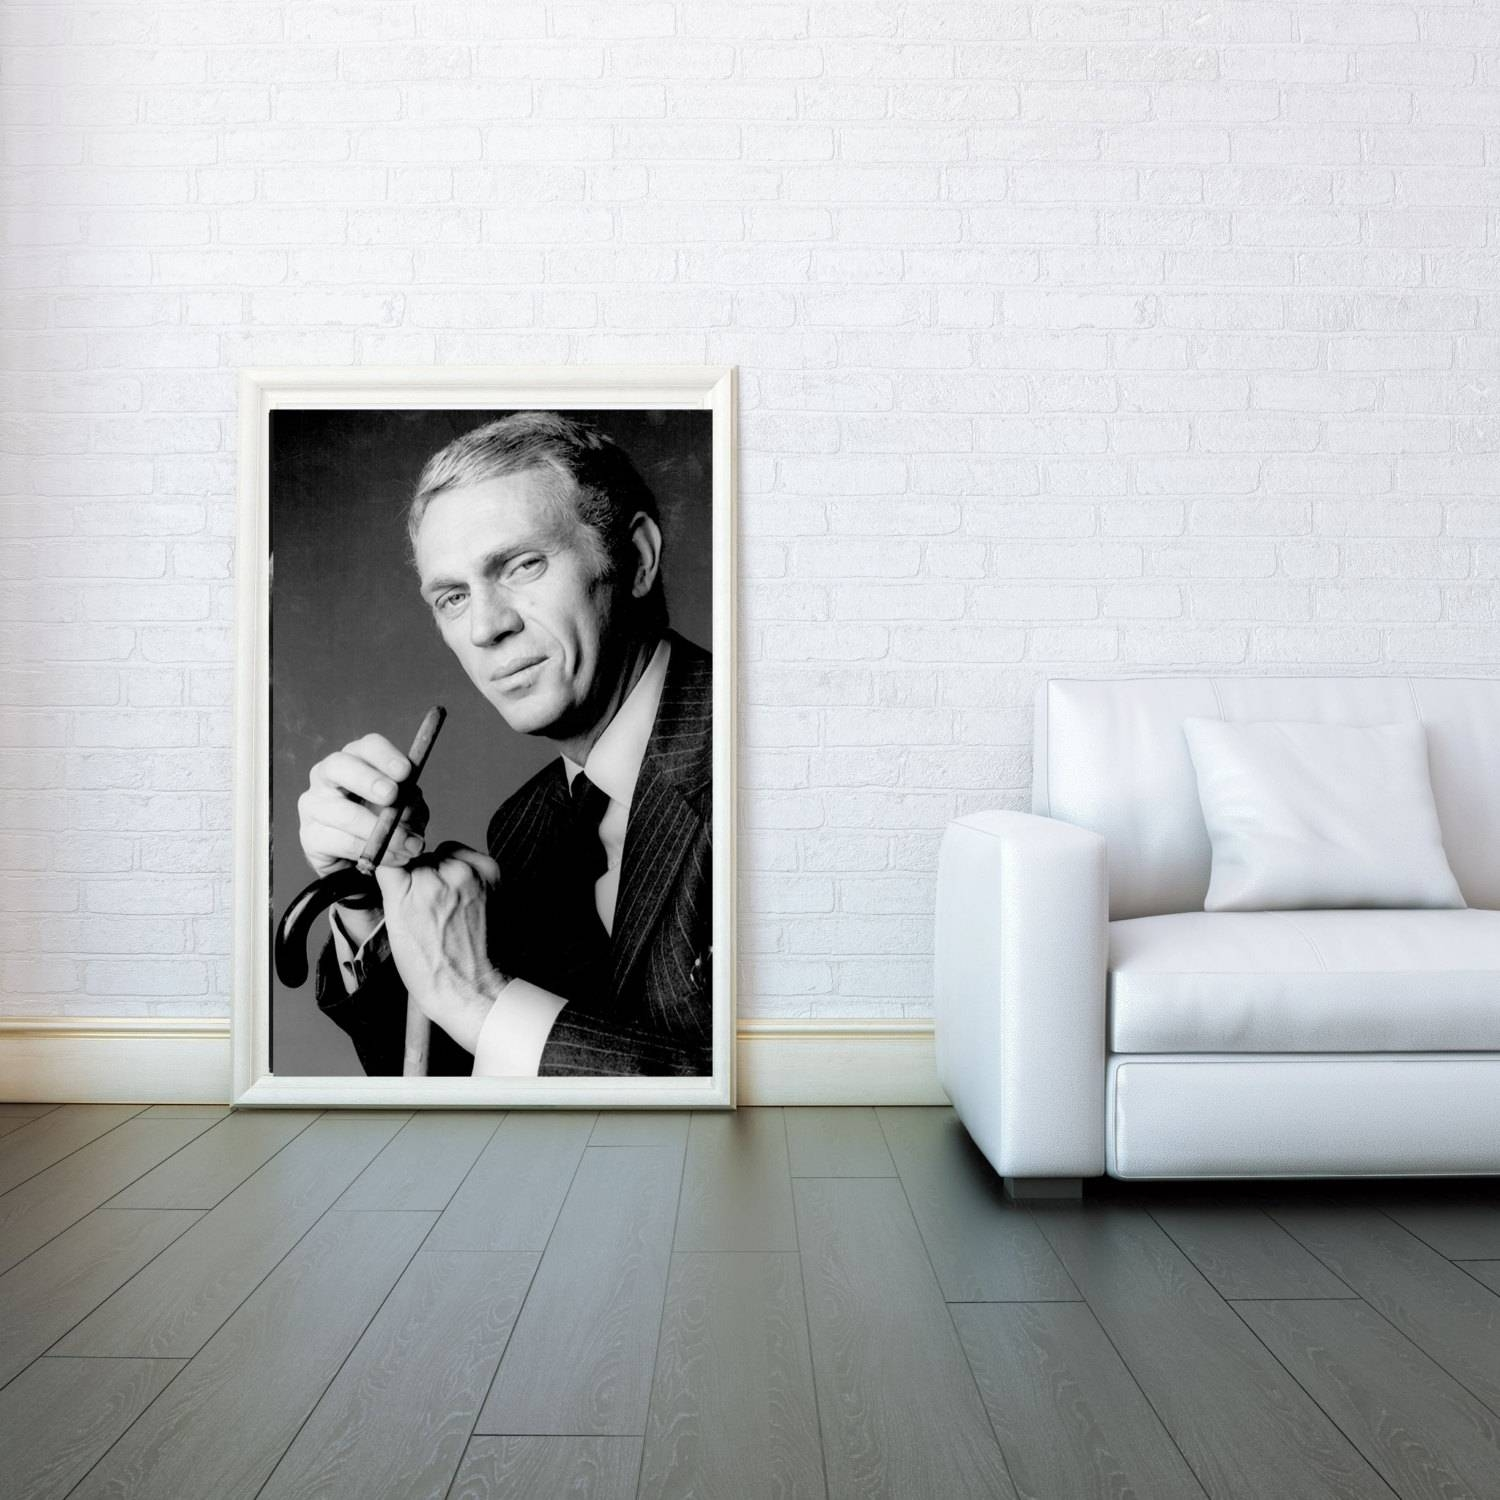 Steve Mcqueen Decorative Arts Prints & Posters Wall Art Print Inside 2017 Steve Mcqueen Wall Art (View 10 of 20)